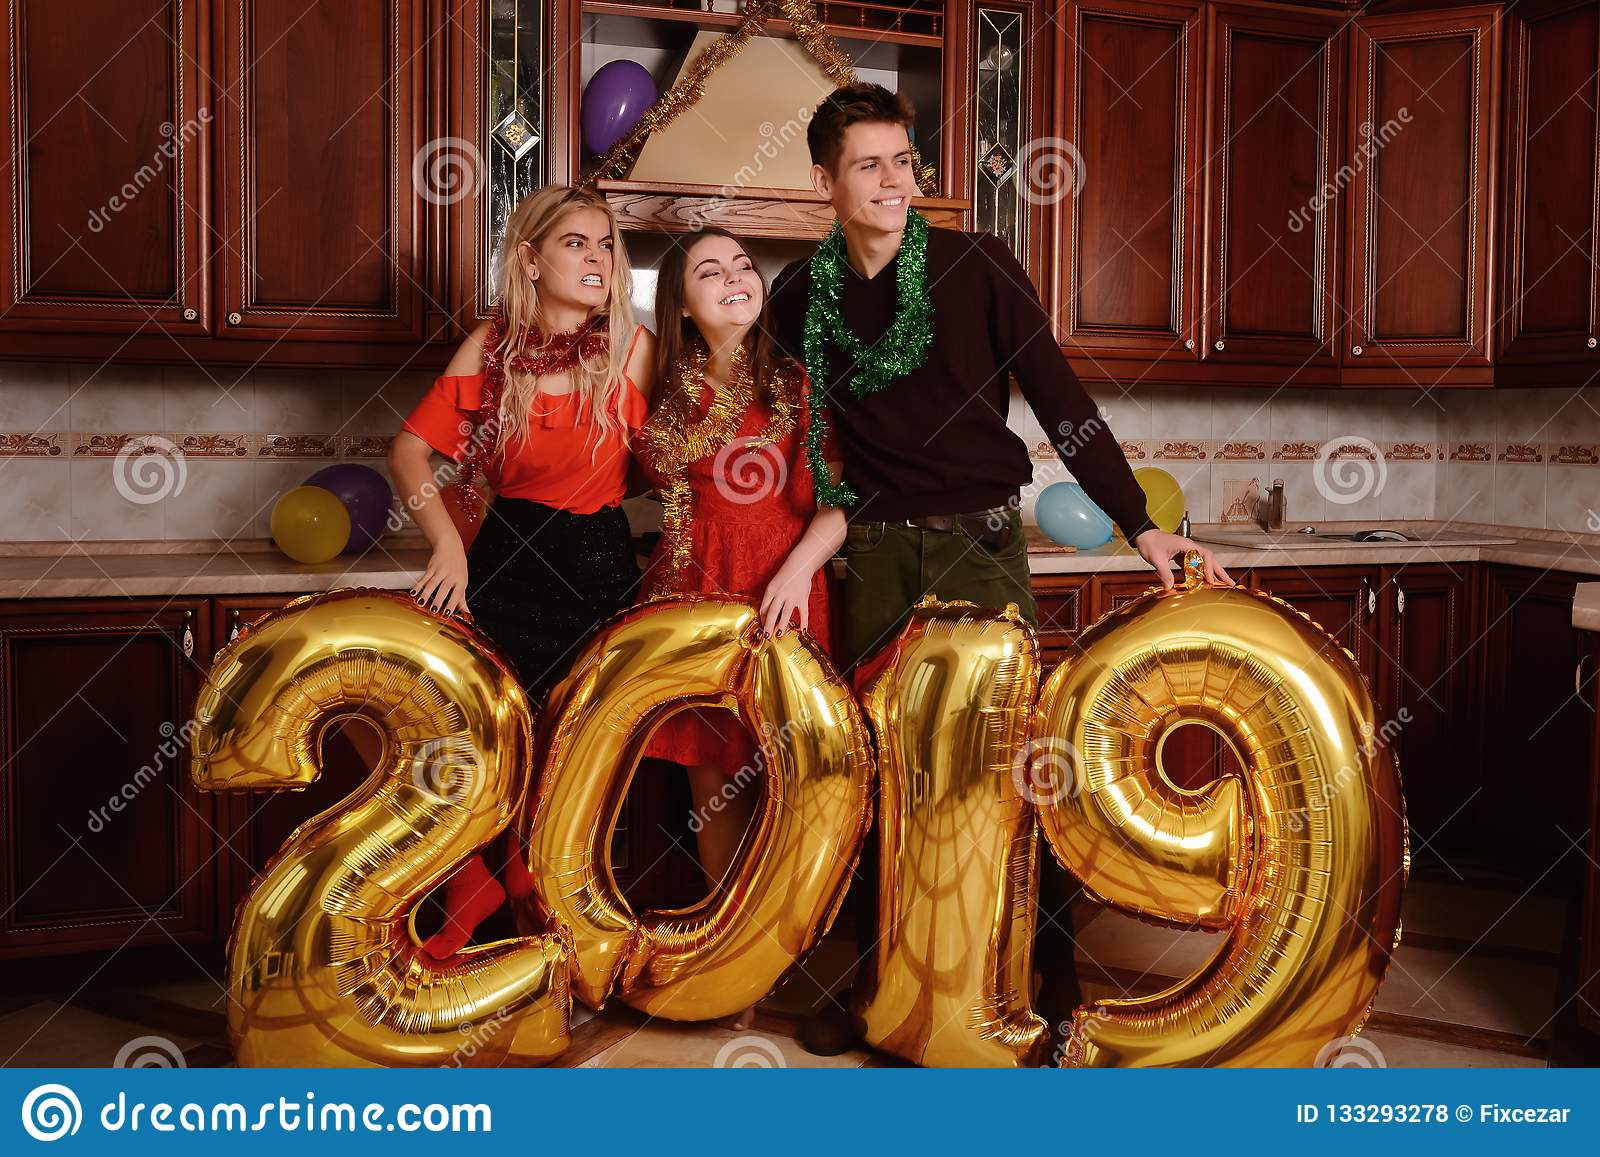 New 2019 Year is coming. Group of cheerful young people carrying gold colored numbers and have fun at the party